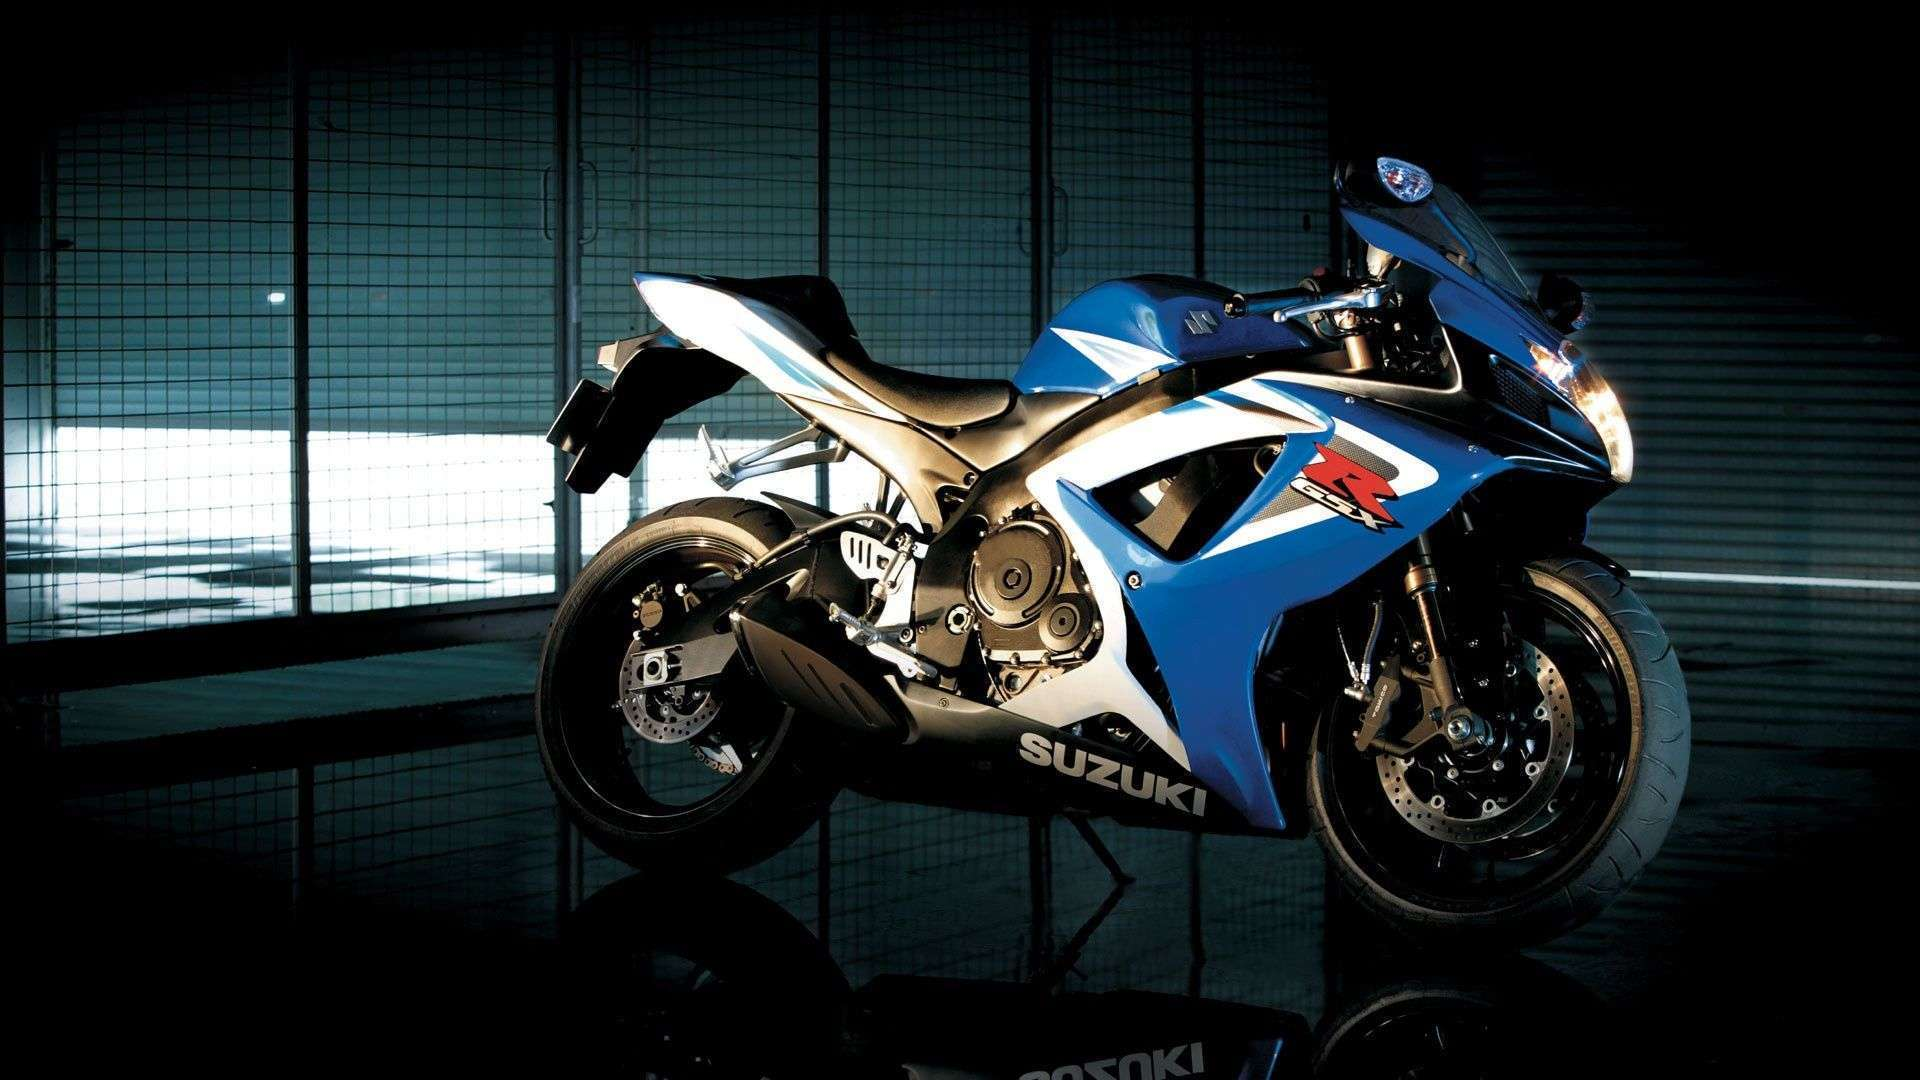 2013 Suzuki Gsx R750 Bike Wallpapers